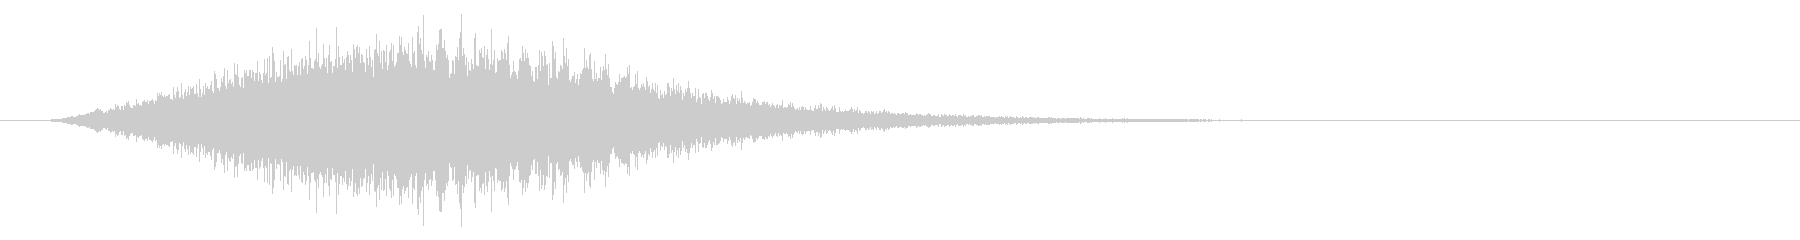 Sounds of chanting and activating magic #12's unreproduced waveform